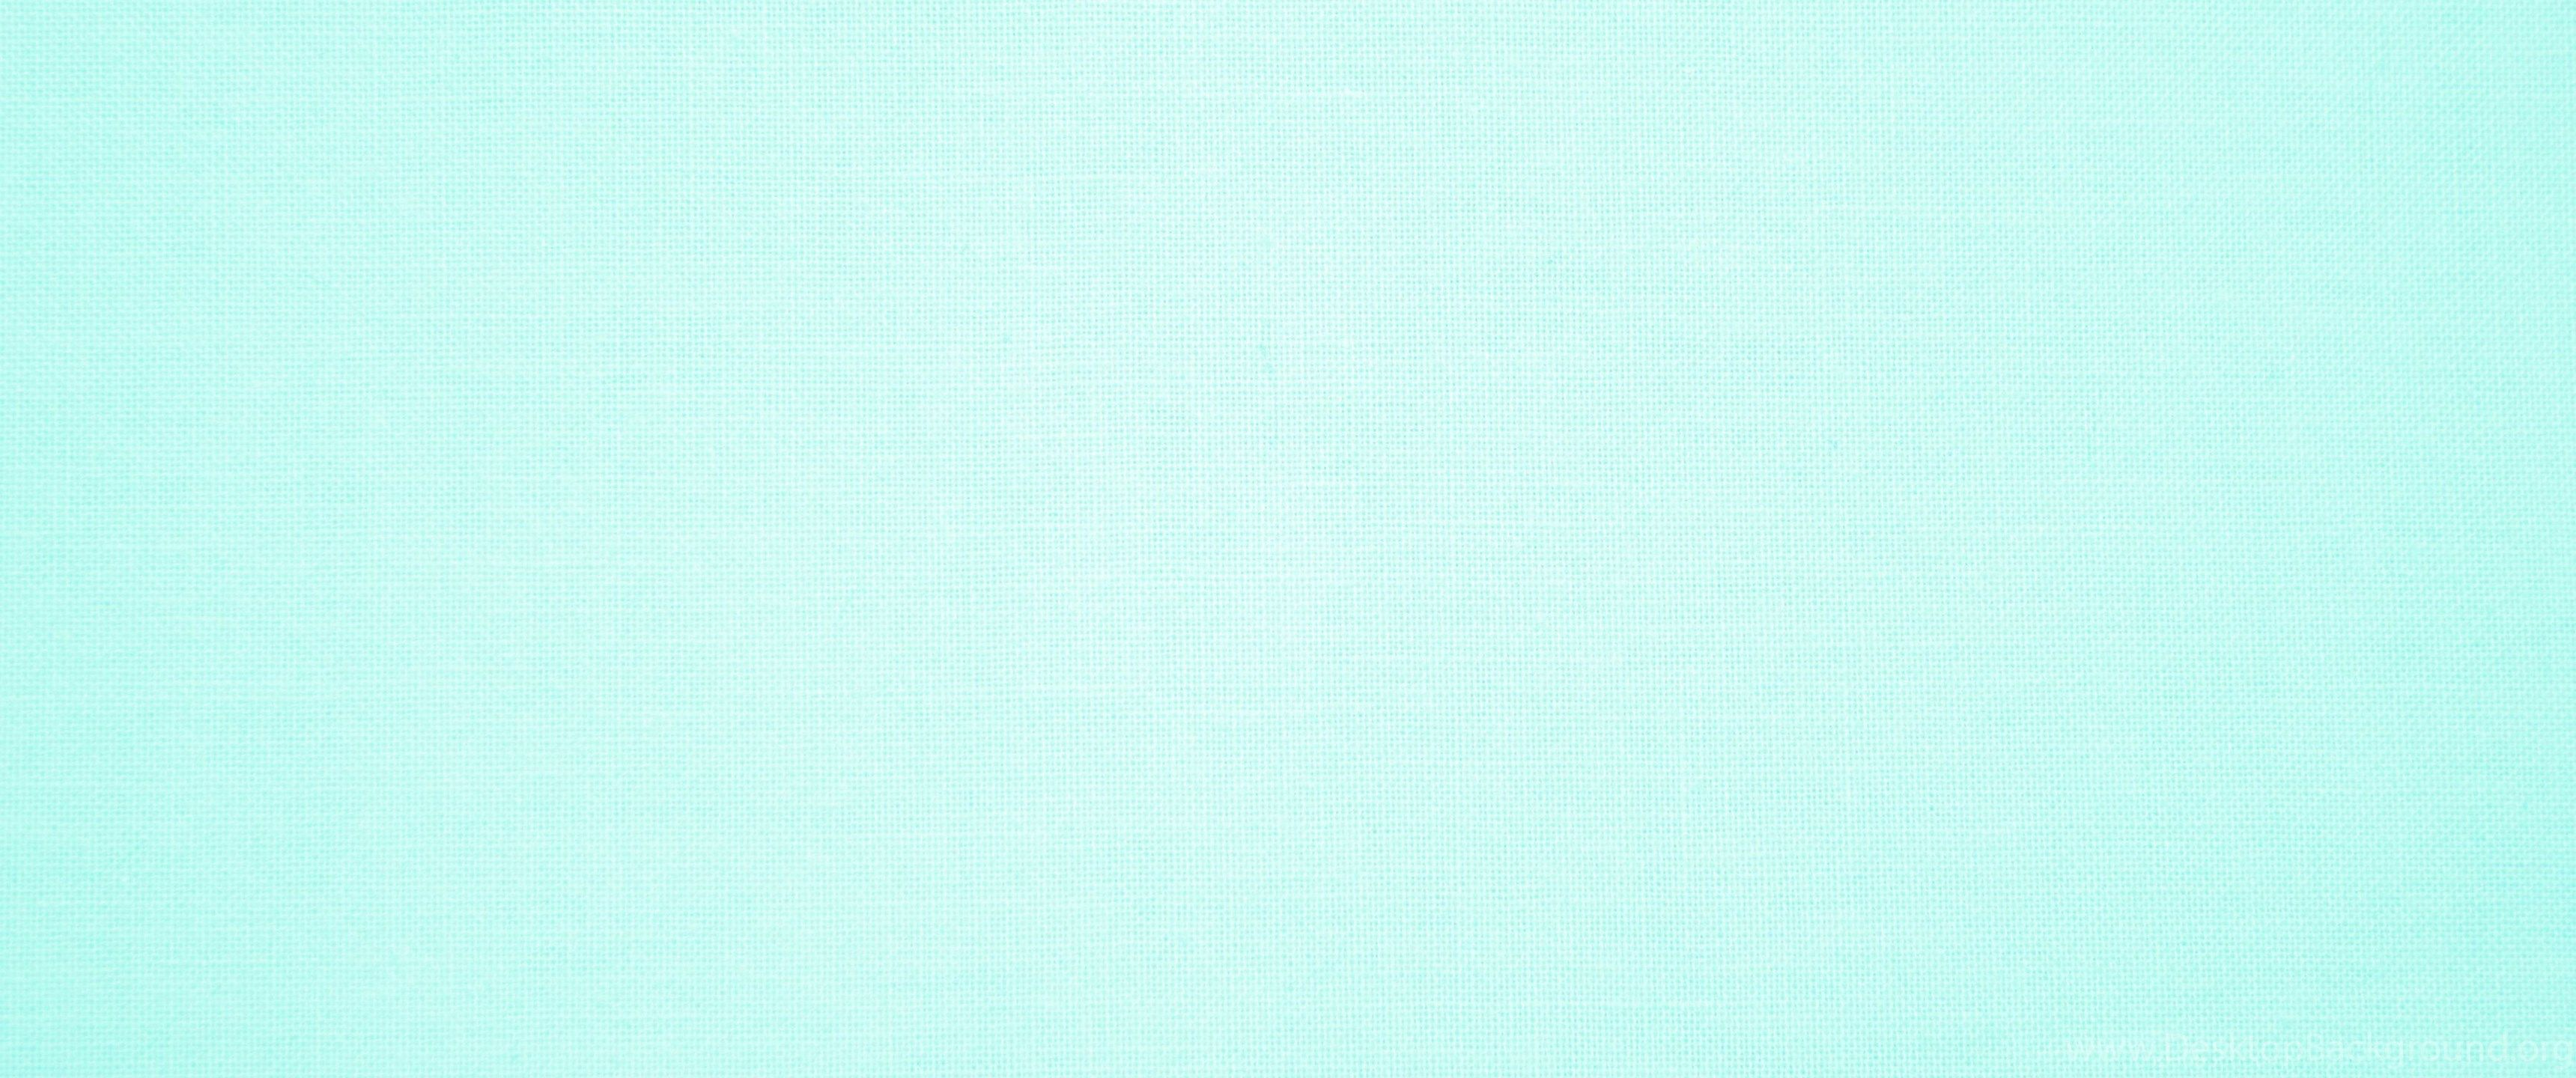 3440x1440 Gallery For Plain Pastel Colors Wallpapers Desktop Background